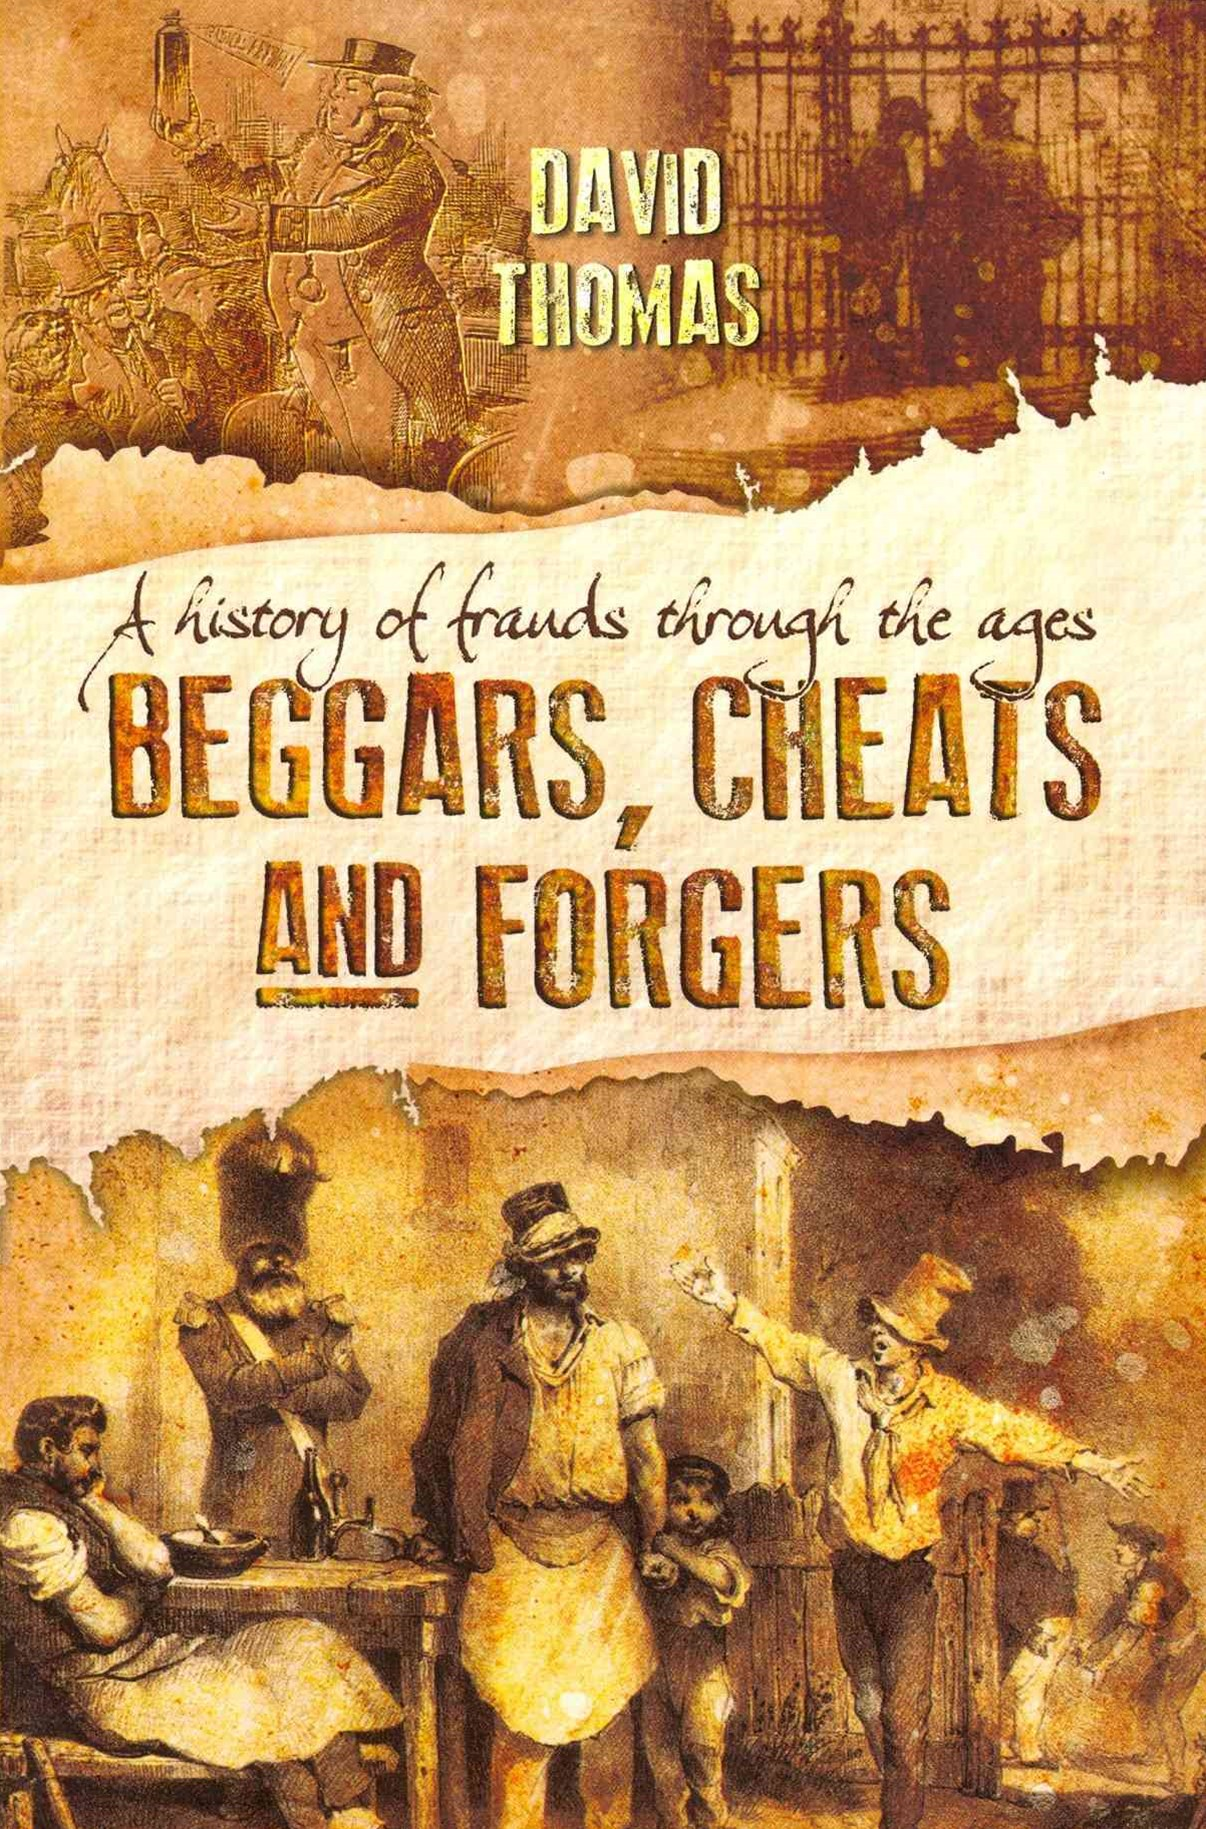 Beggars, Cheats and Forgers